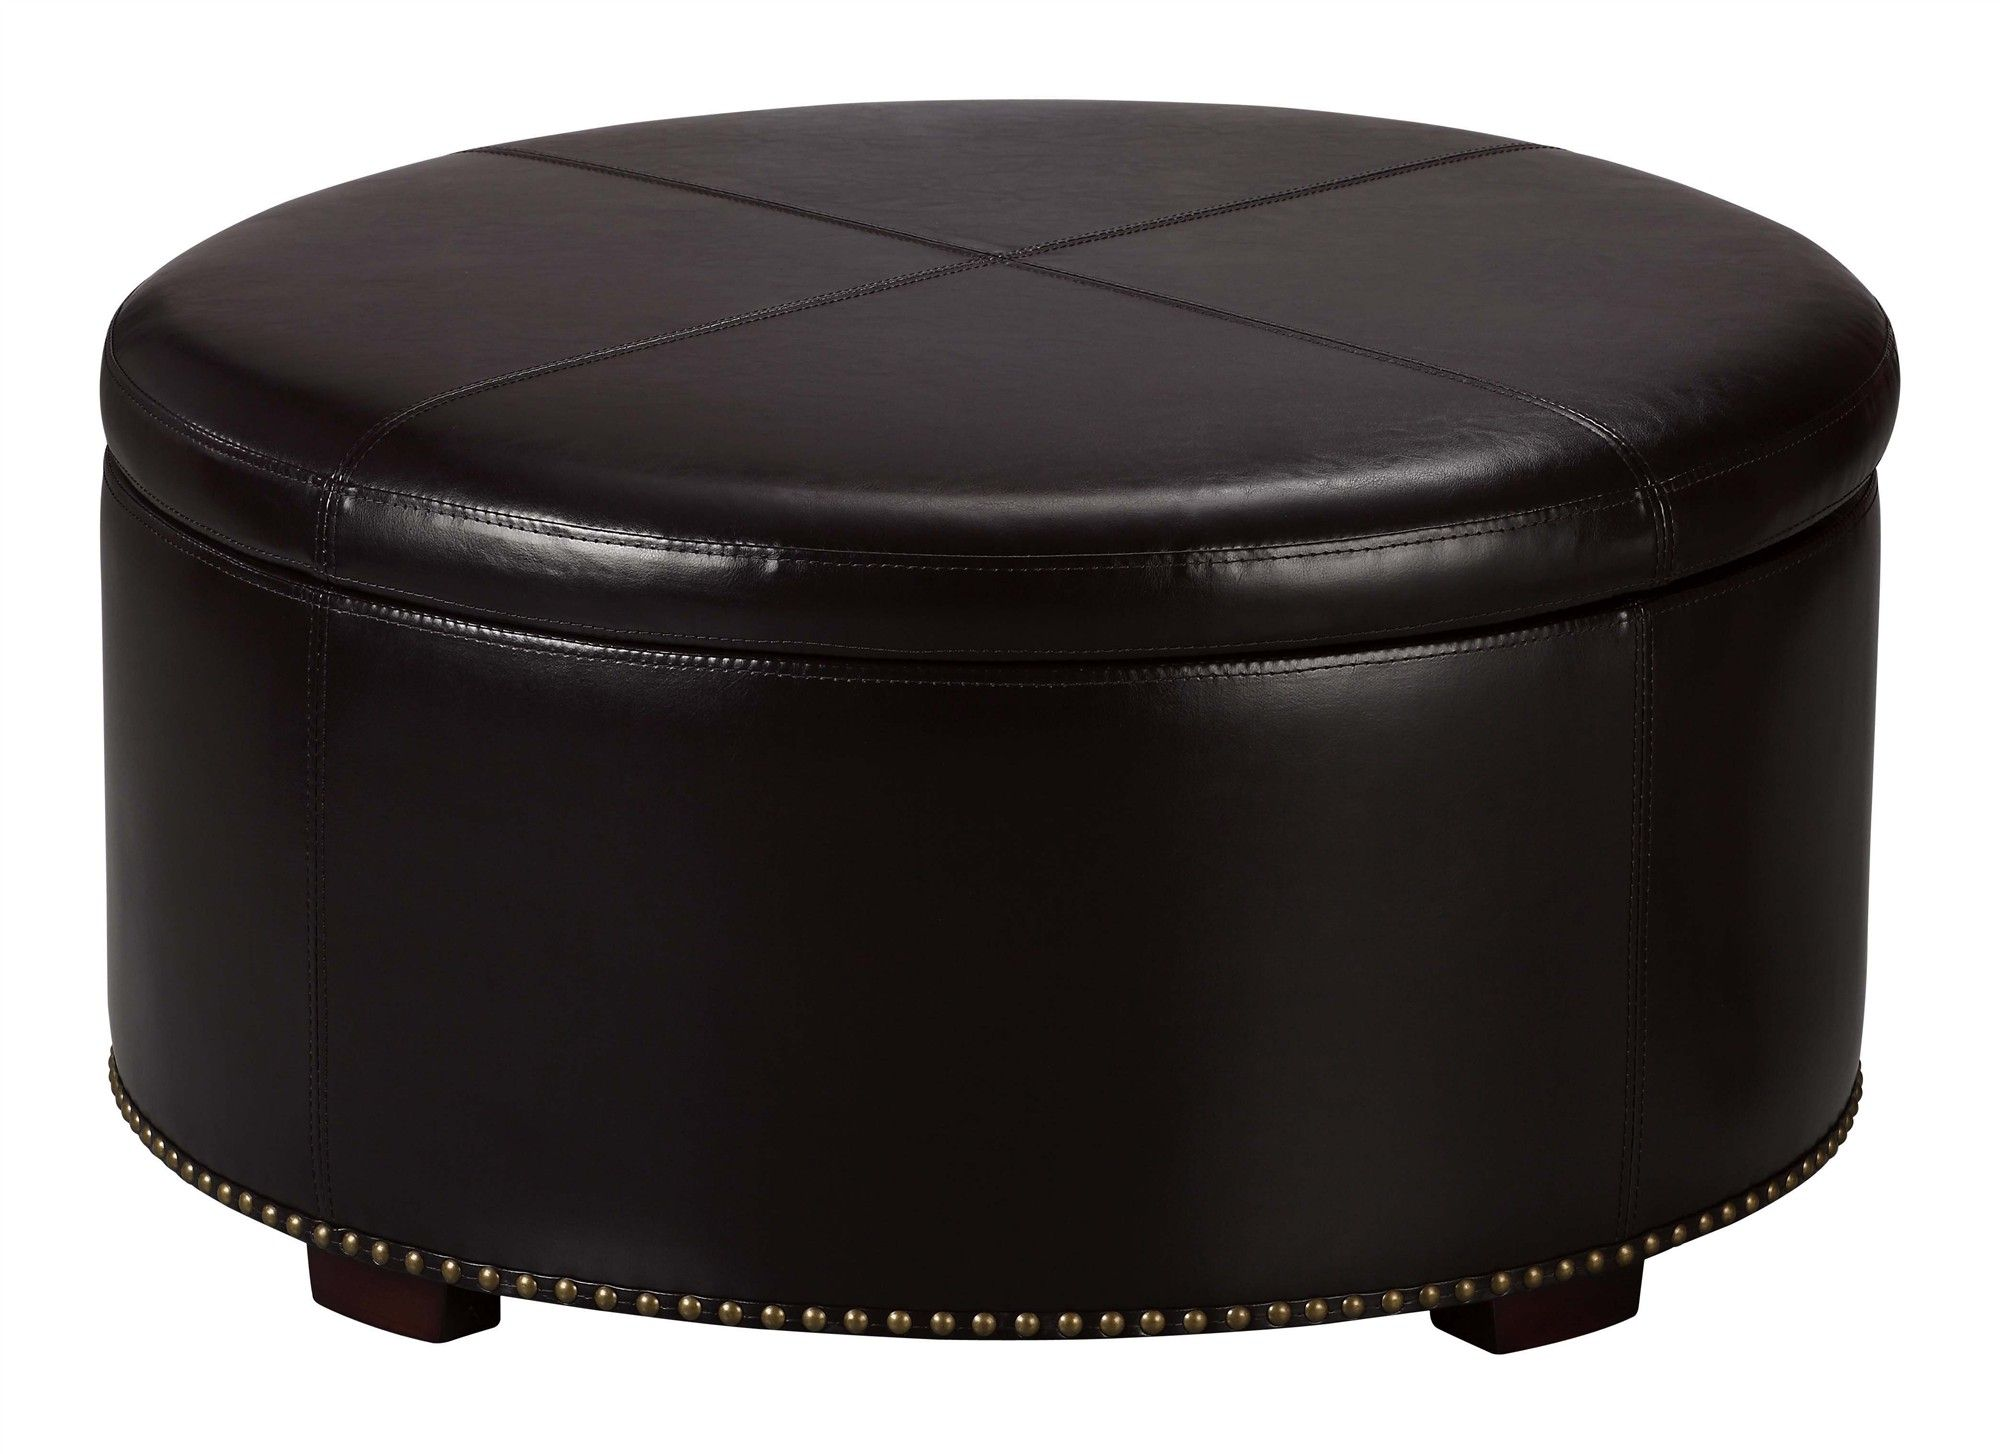 Dark Brown Leather Coffee Table Collection Black Color Modern Round Leather Ottoman Coffee Ta [ 1454 x 2000 Pixel ]